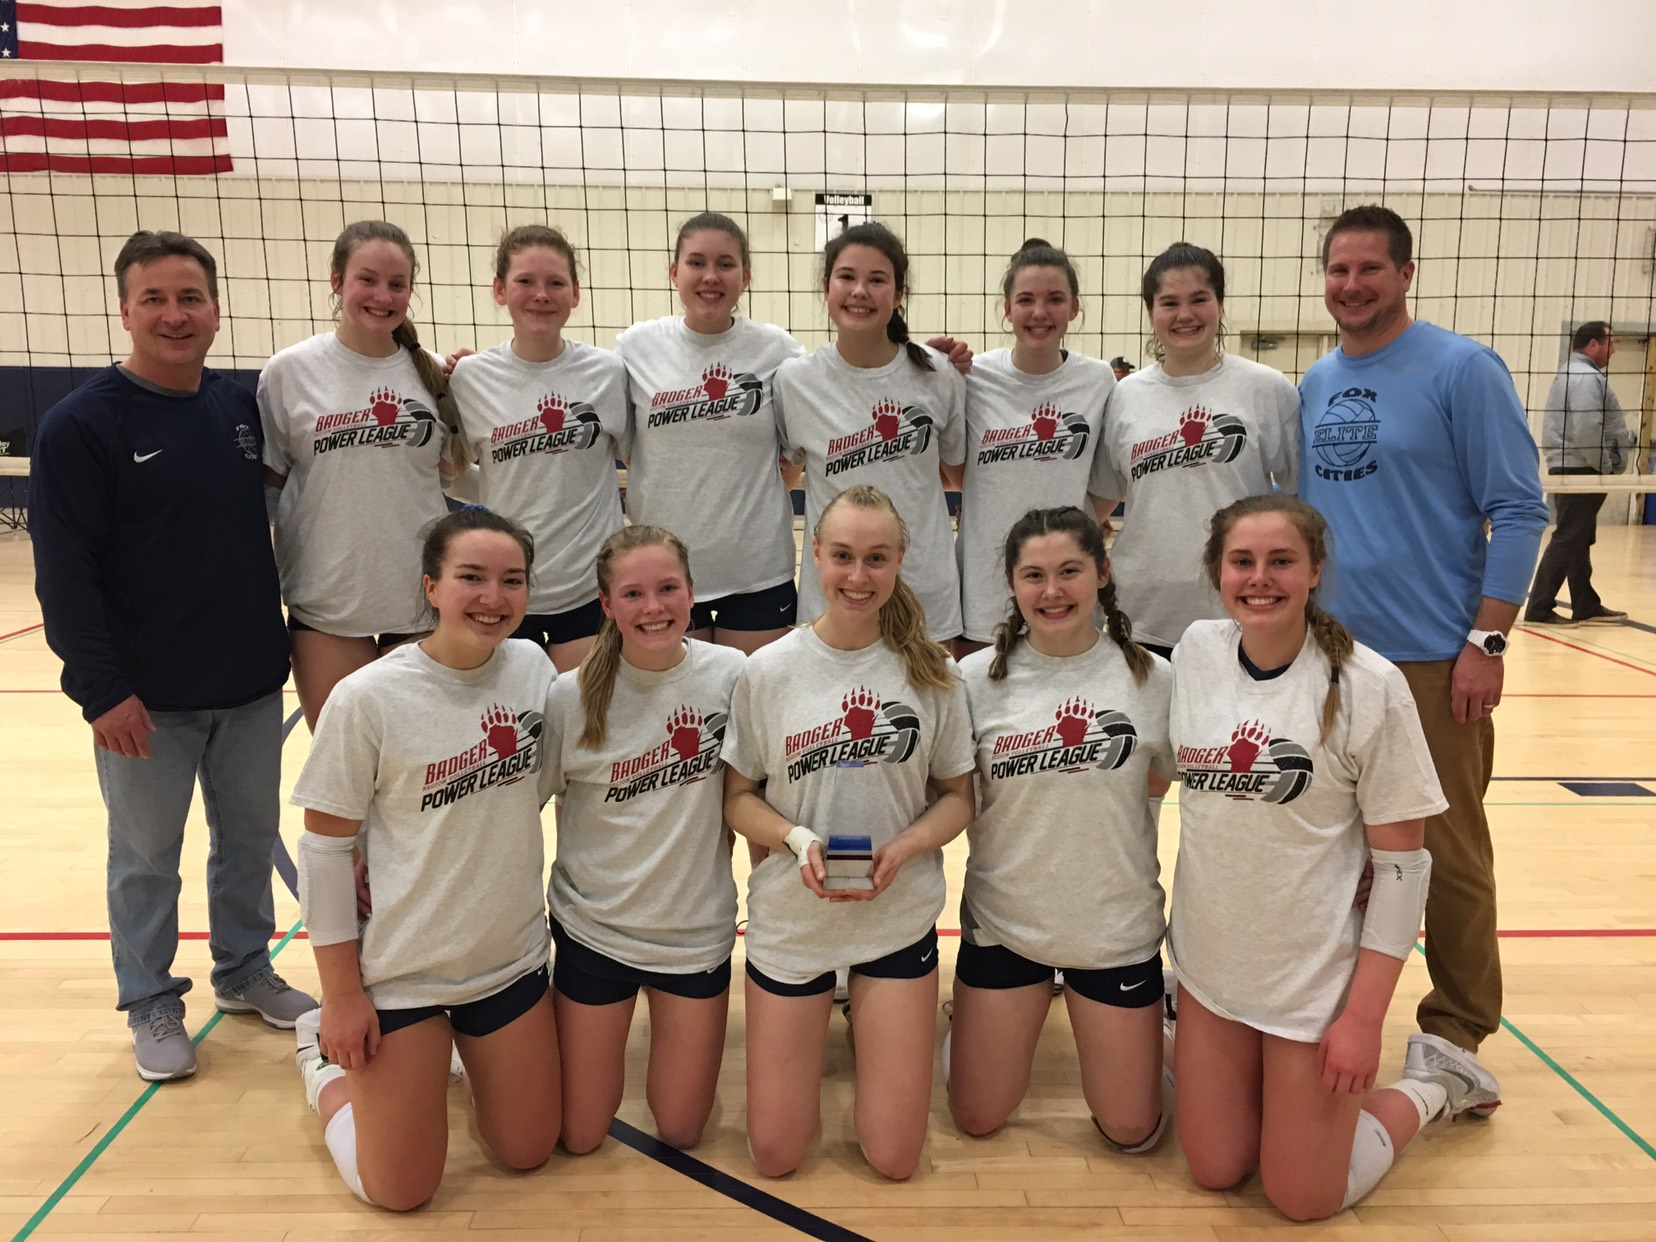 Badger Region Volleyball Association Badger Region Power League